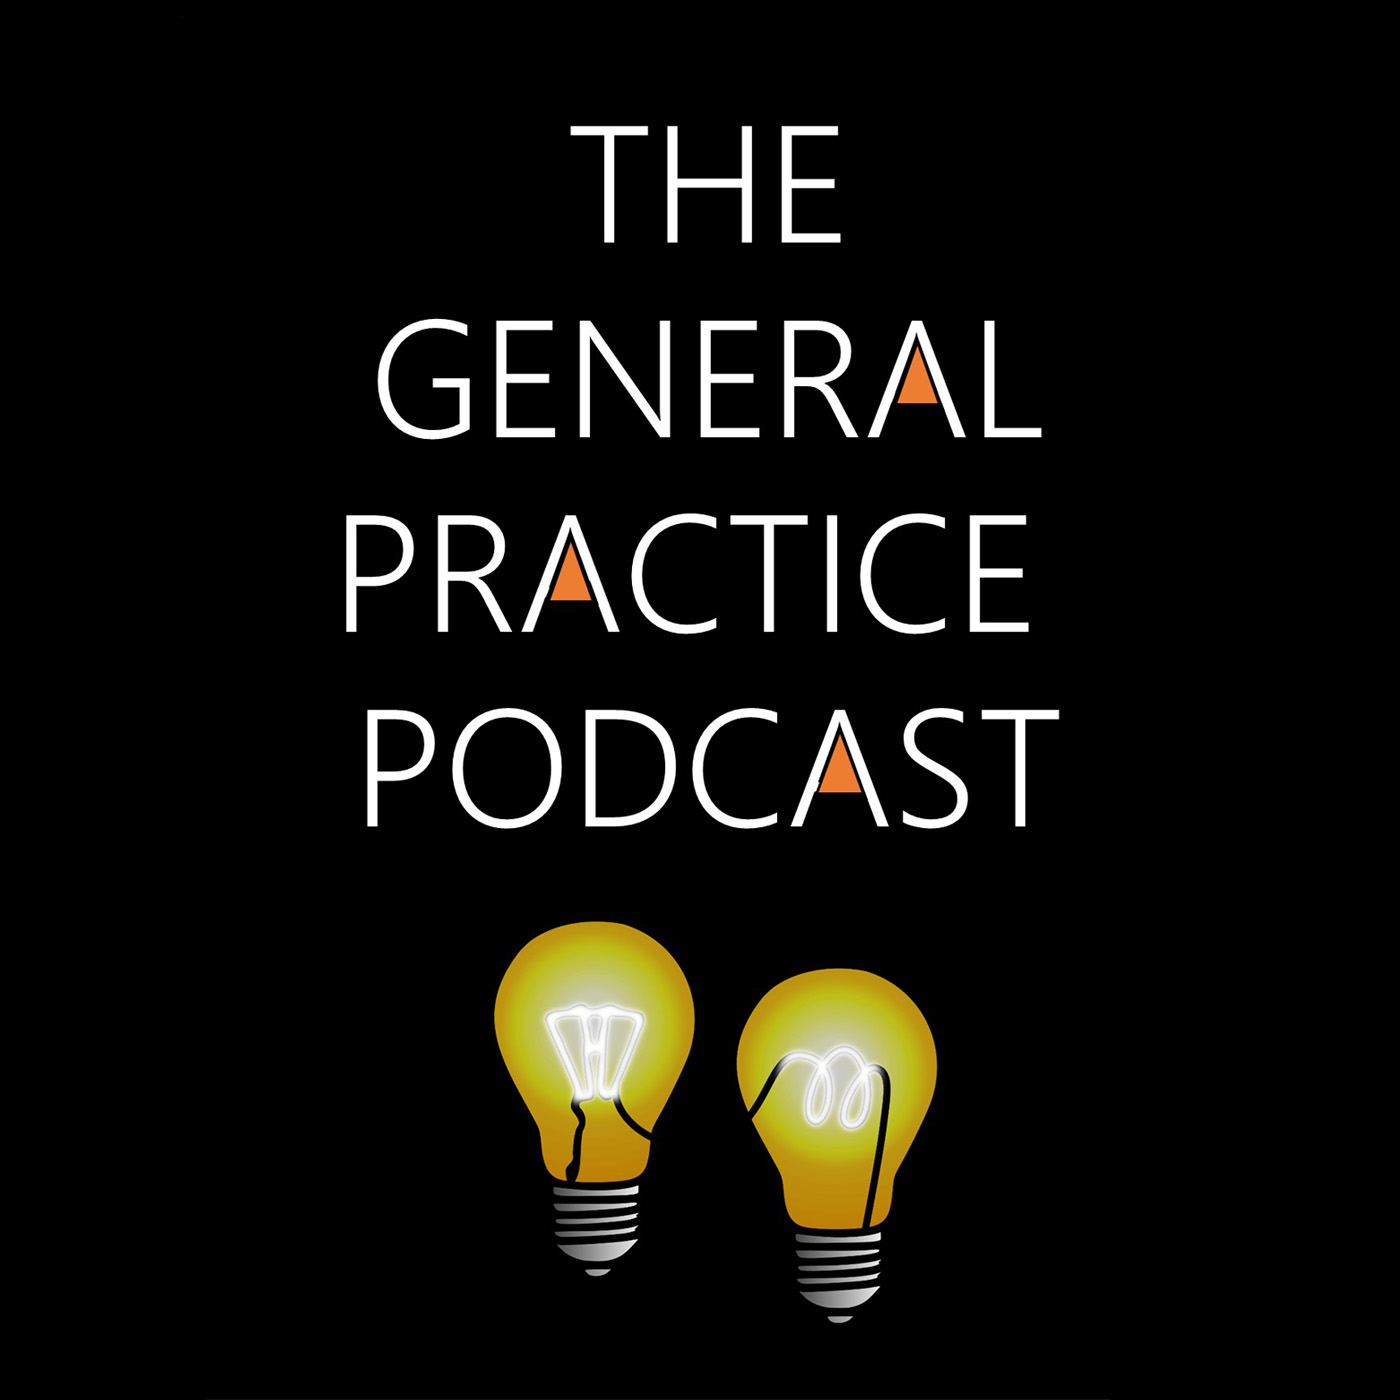 The General Practice Podcast show art